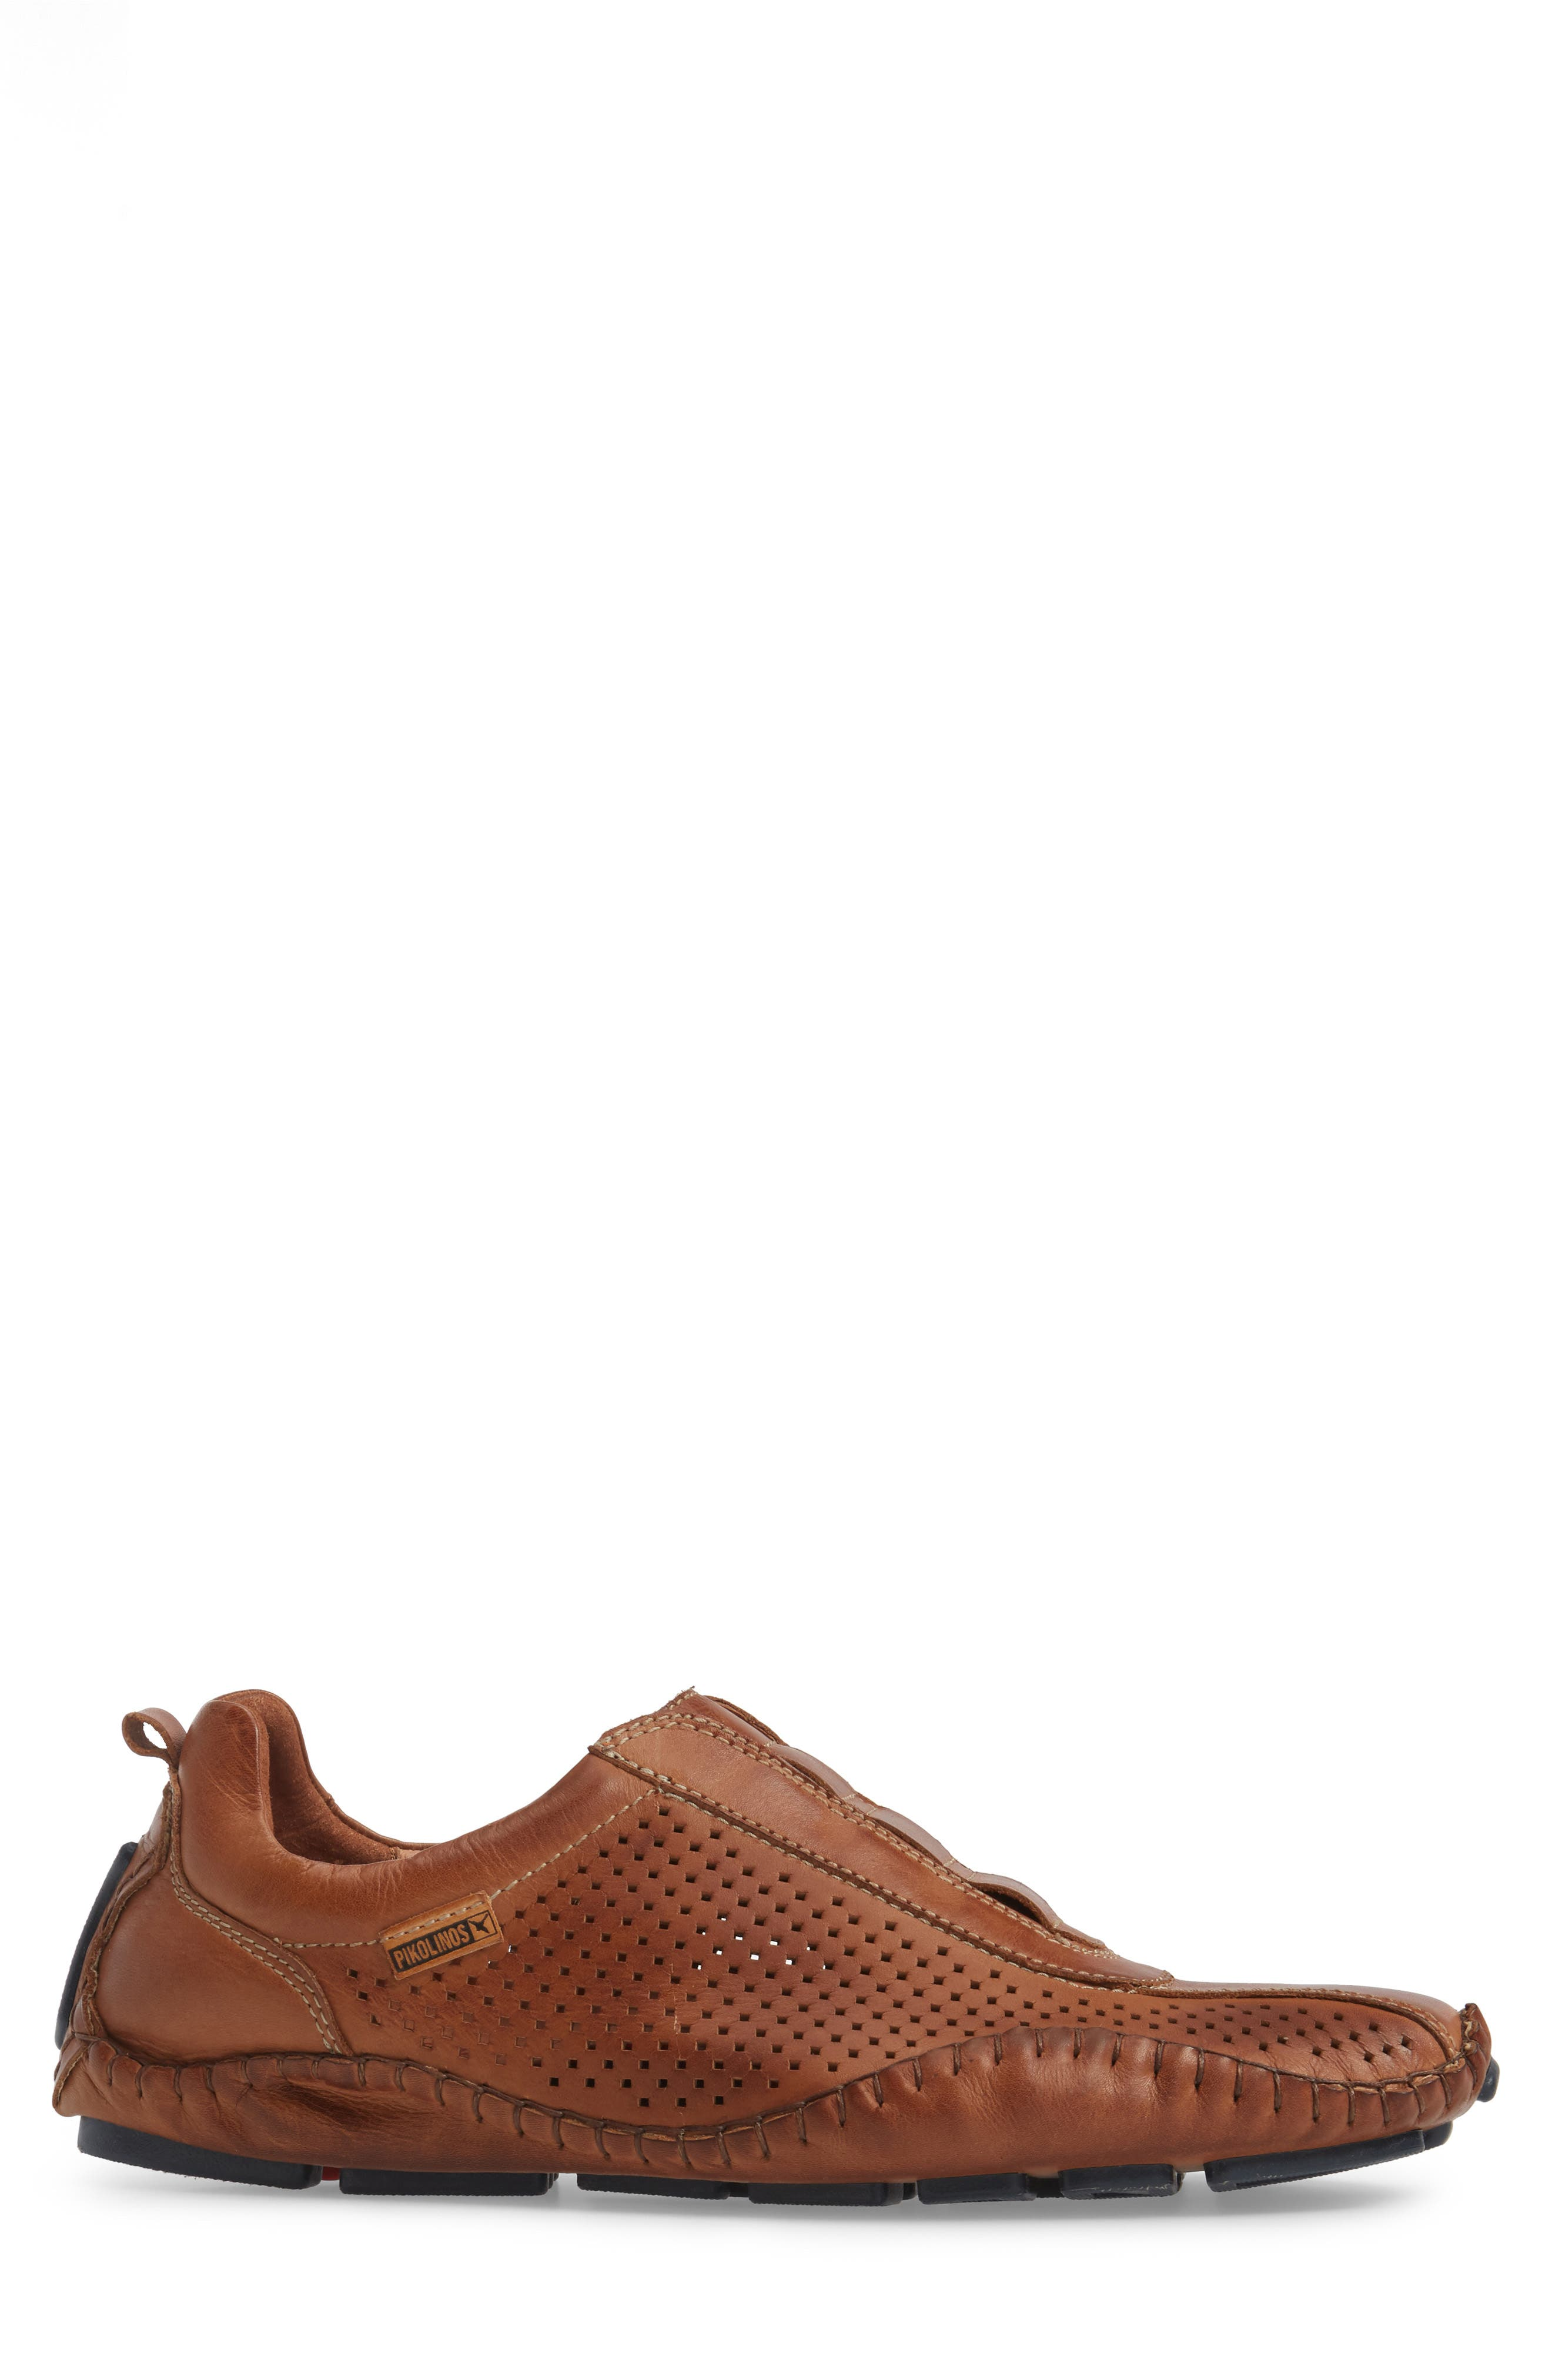 Fuencarral Driving Shoe,                             Alternate thumbnail 3, color,                             Brandy Leather